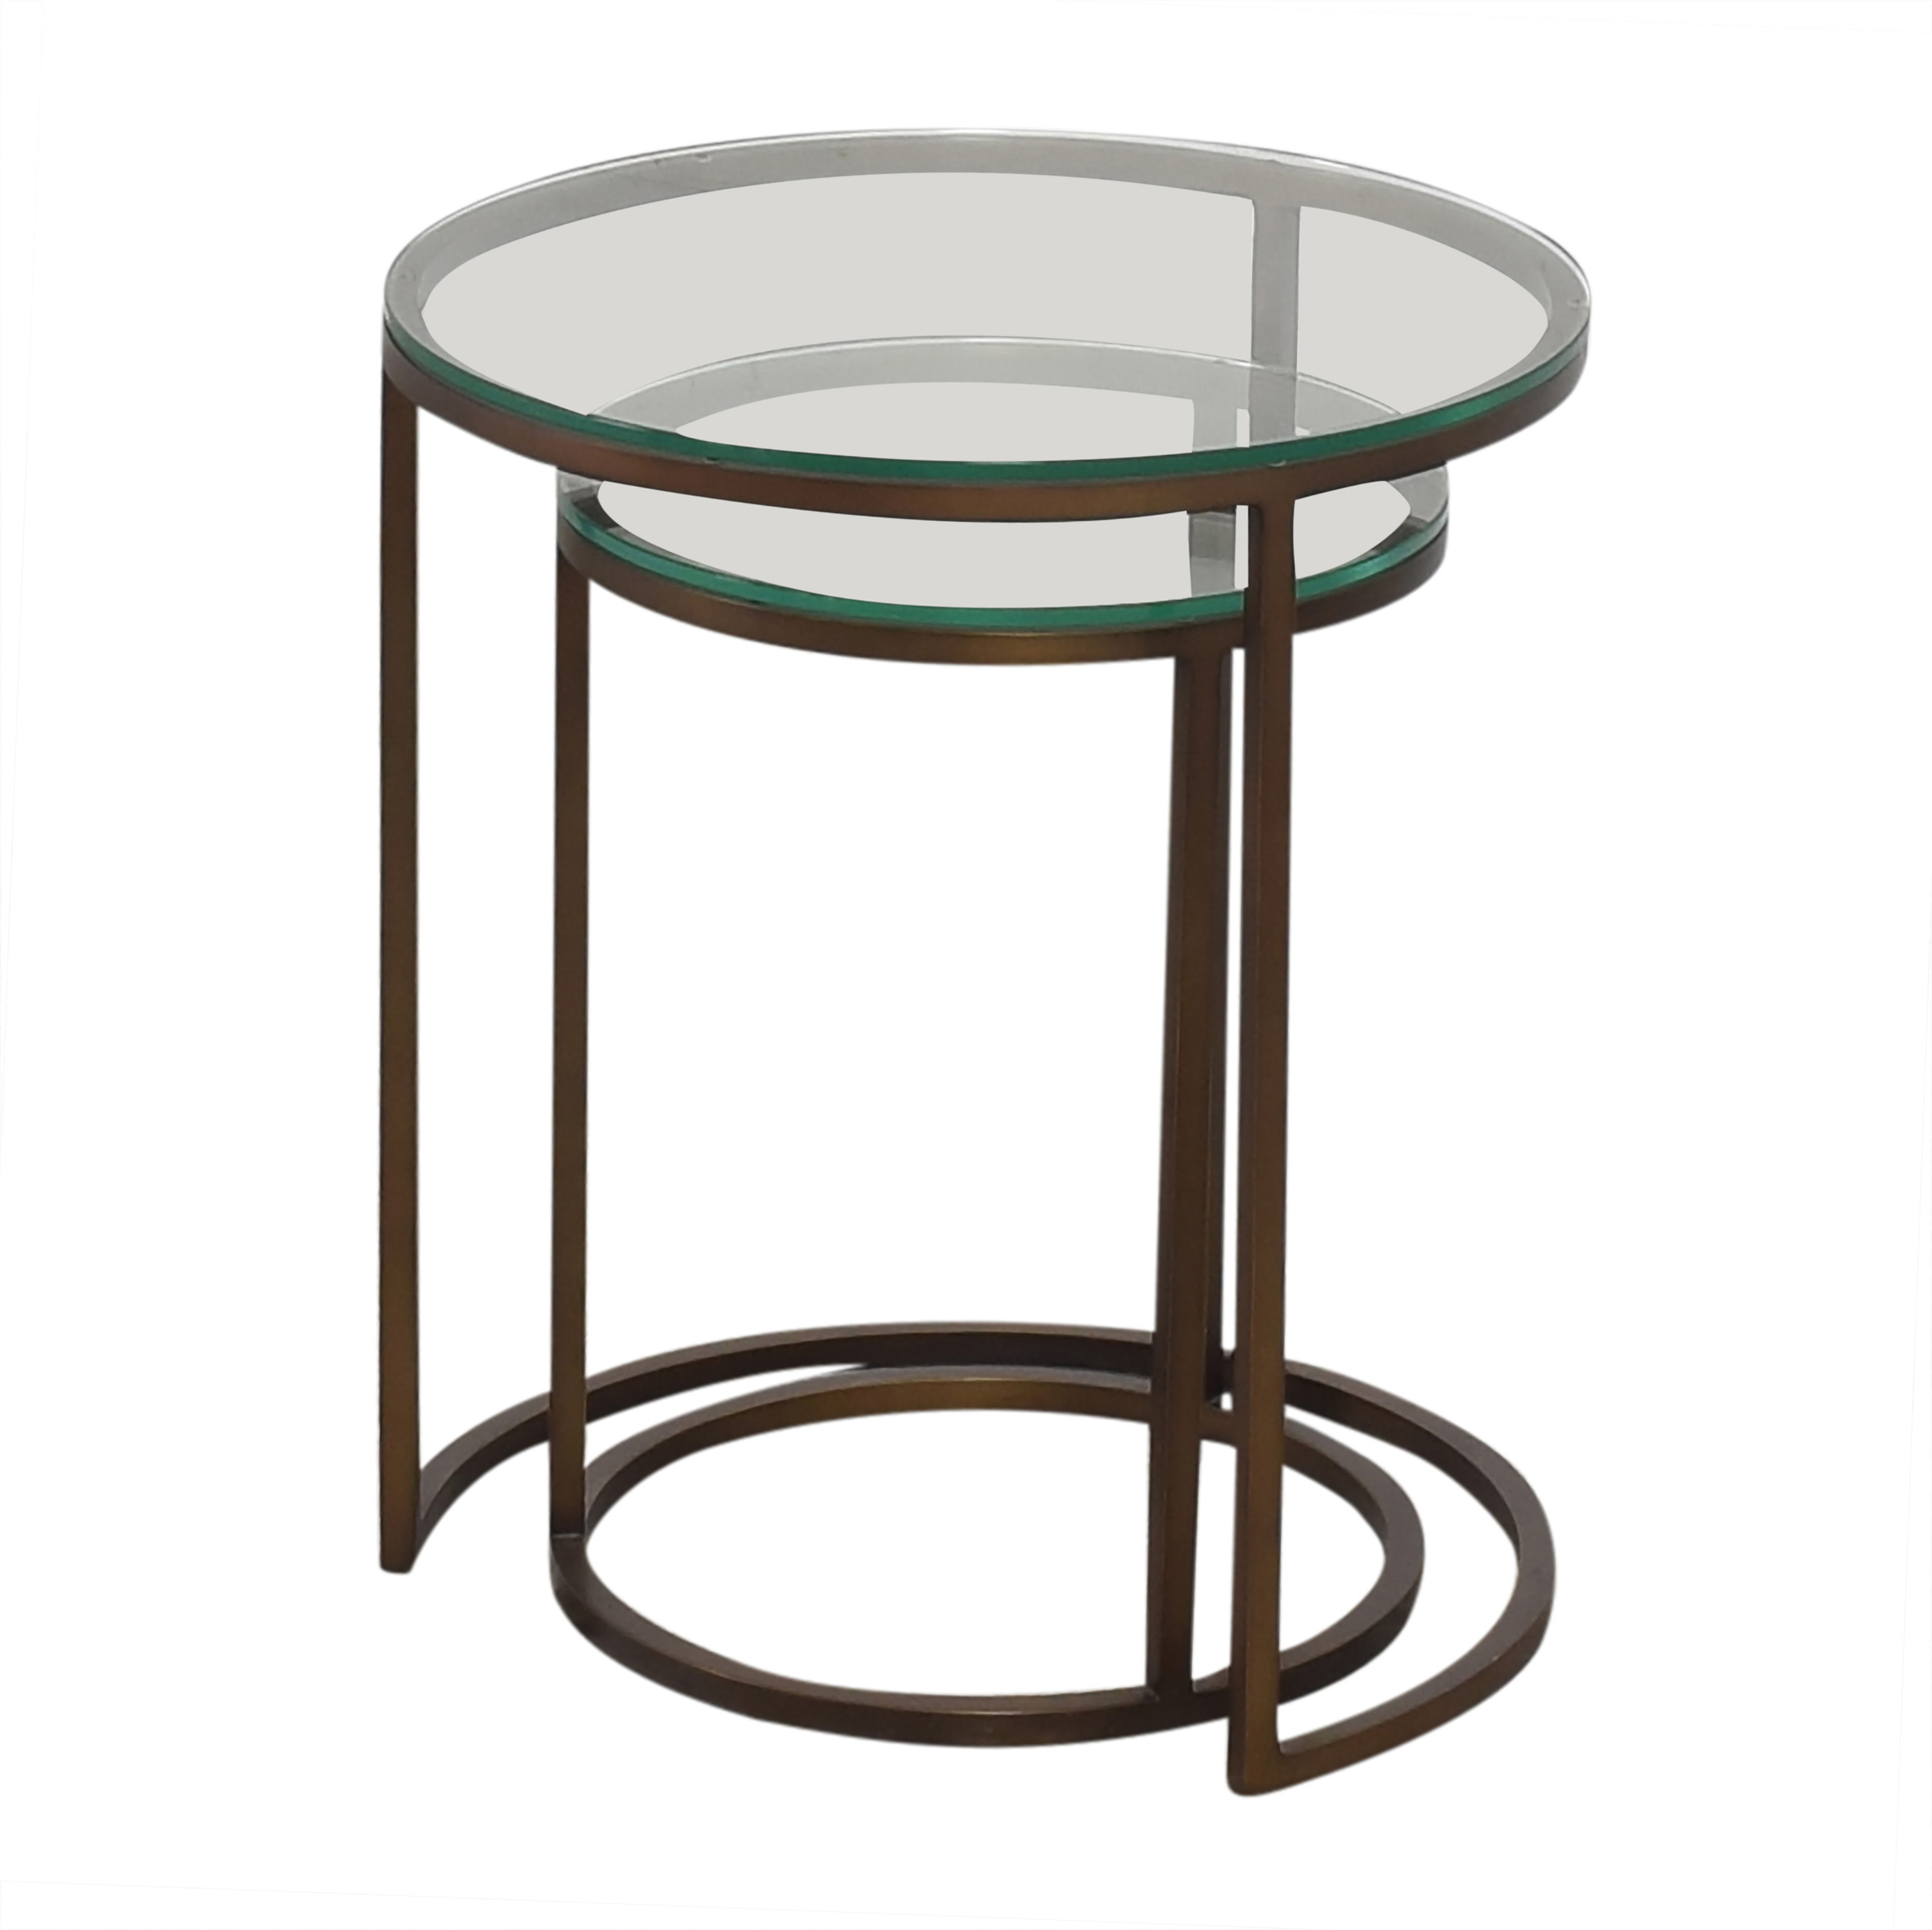 Mitchell Gold + Bob Williams Mitchell Gold + Bob Williams Bassey Nesting Accent Tables second hand